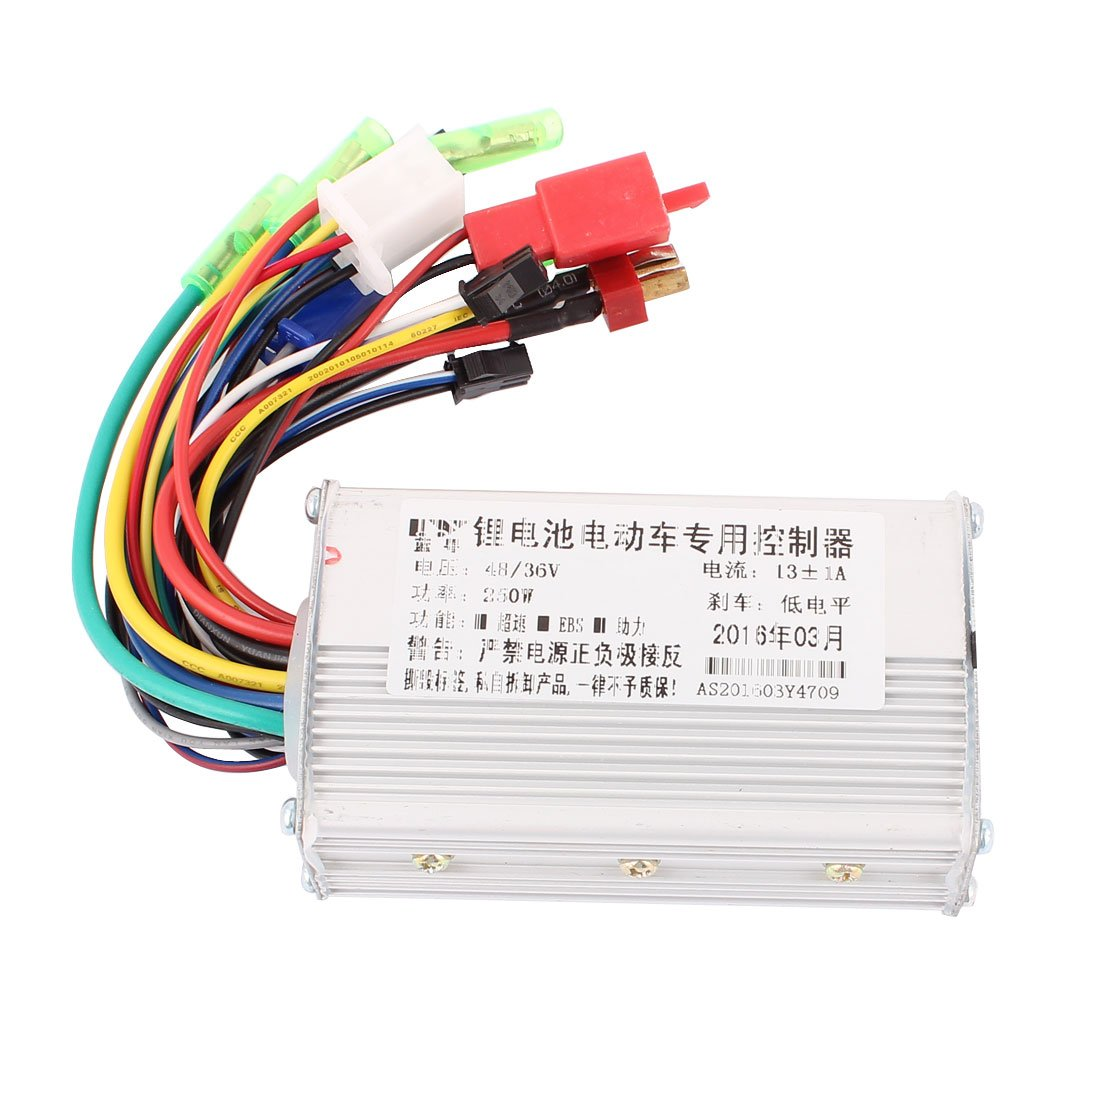 Uxcell 48v 36v 250w Electric Bicycle Brushless Speed Motor Controller Wiring Sports Outdoors